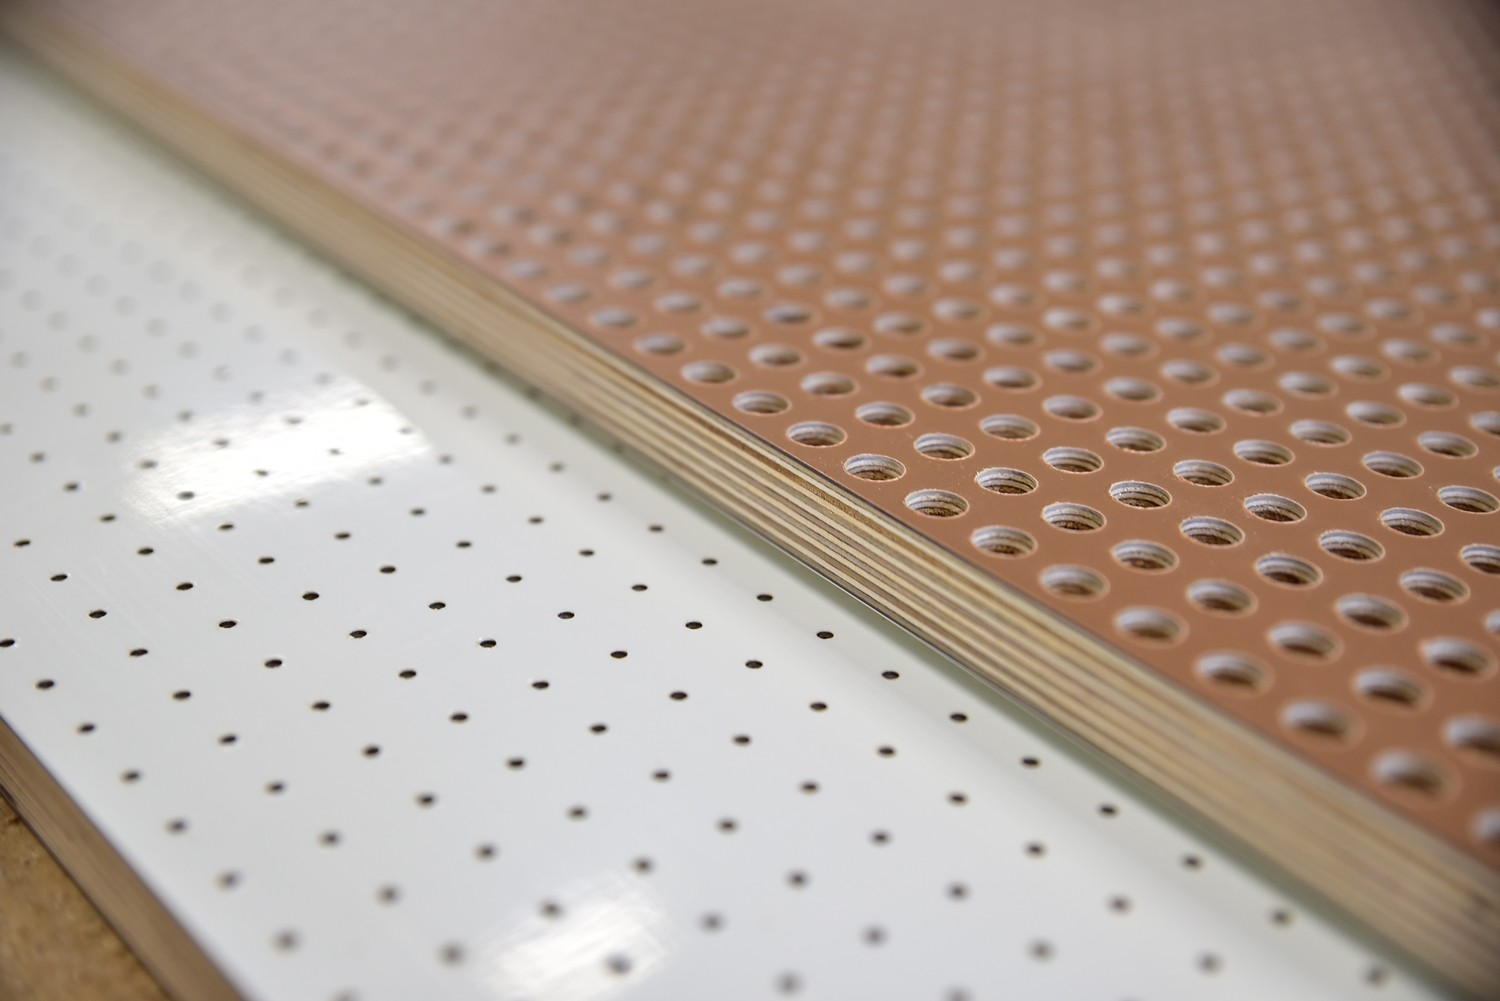 Perforated acoustic panels. The best solution for applications where insulation, acoustic performance, durability and design are required.